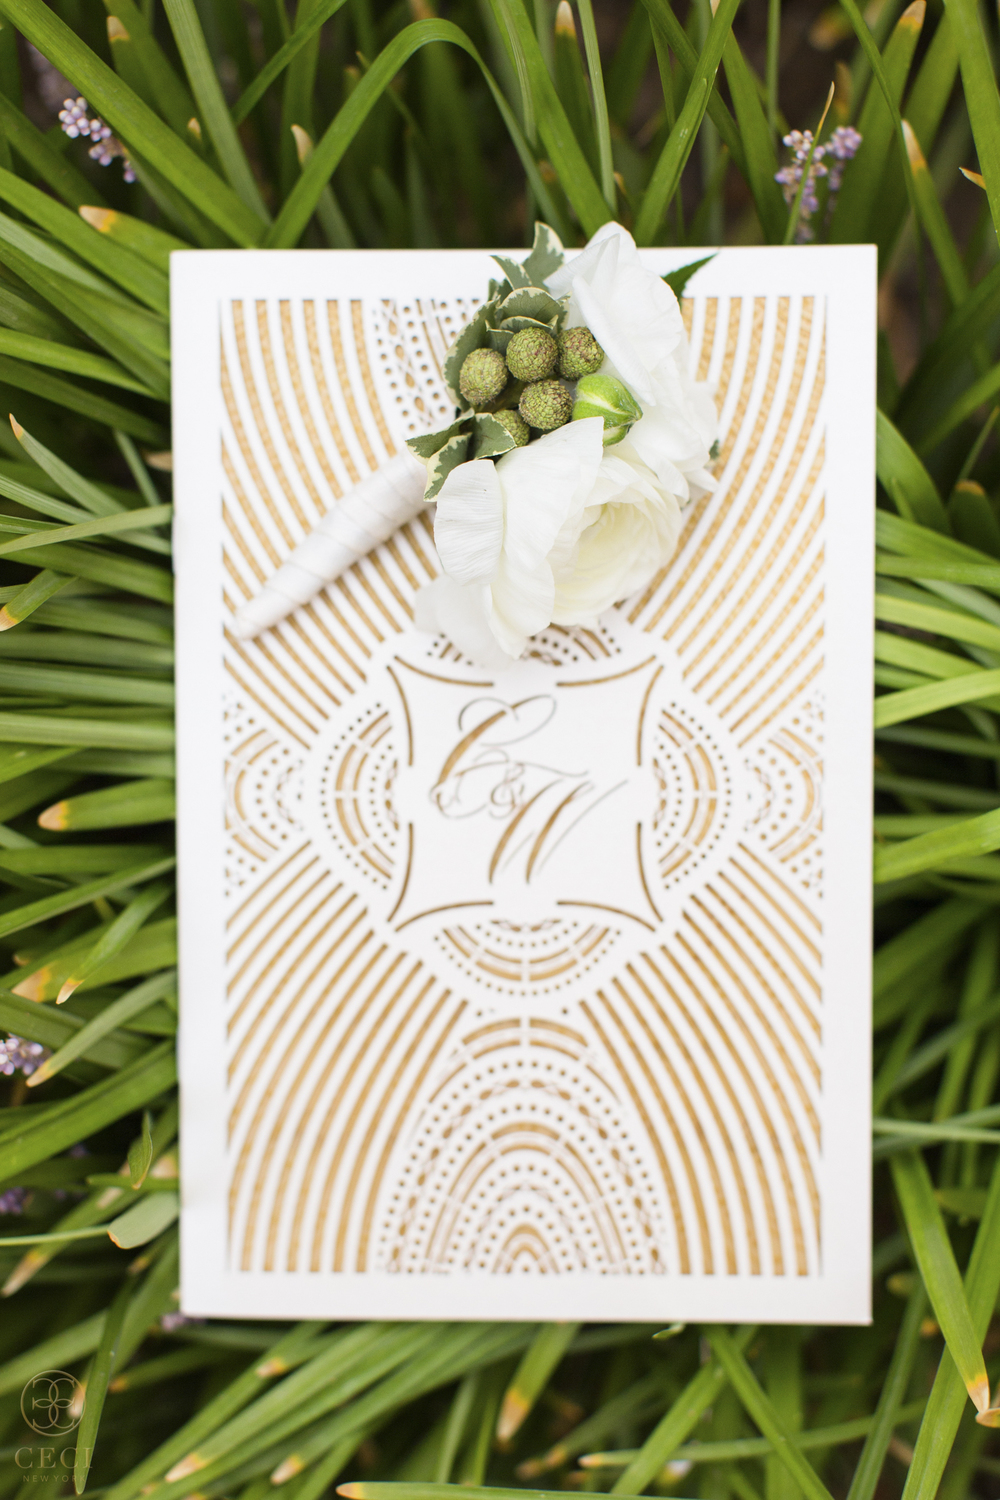 gold_deco_luxe_lavish_wedding_couture_luxury_invitation_design_lasercut_foil_glam_gilded_modern_sophisticated_midland_texas_invitations_suite-1.jpg